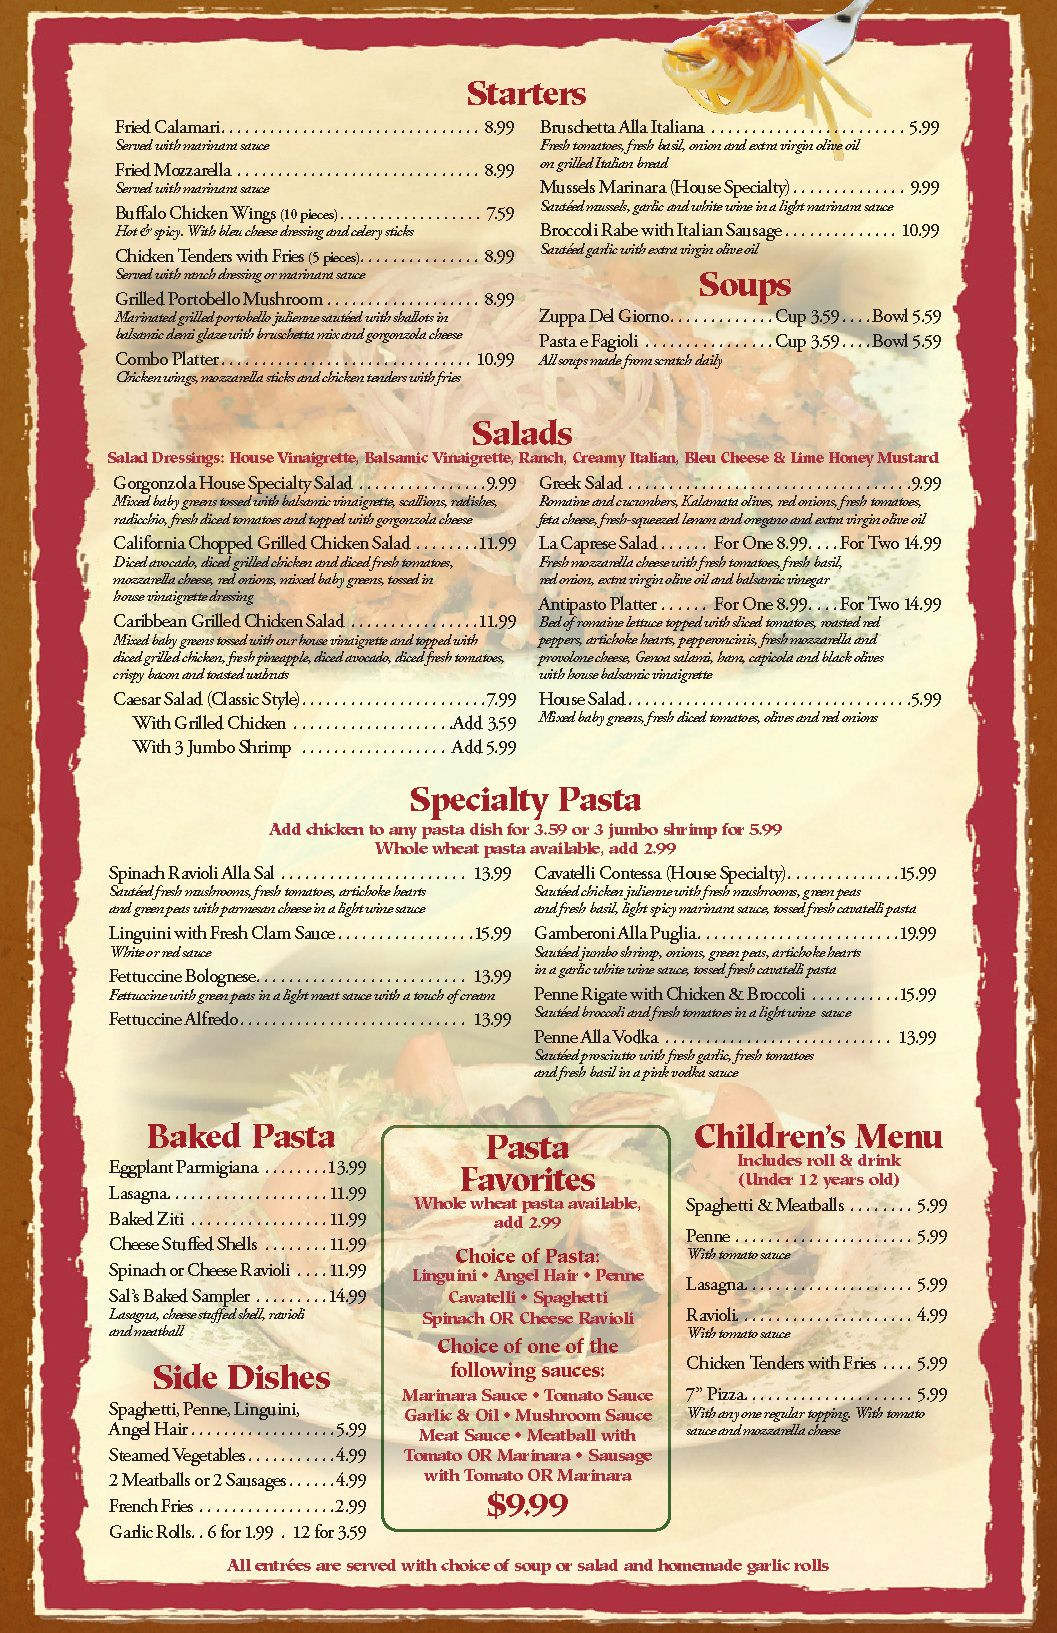 free blank restaurant menu templates restaurant menu templates